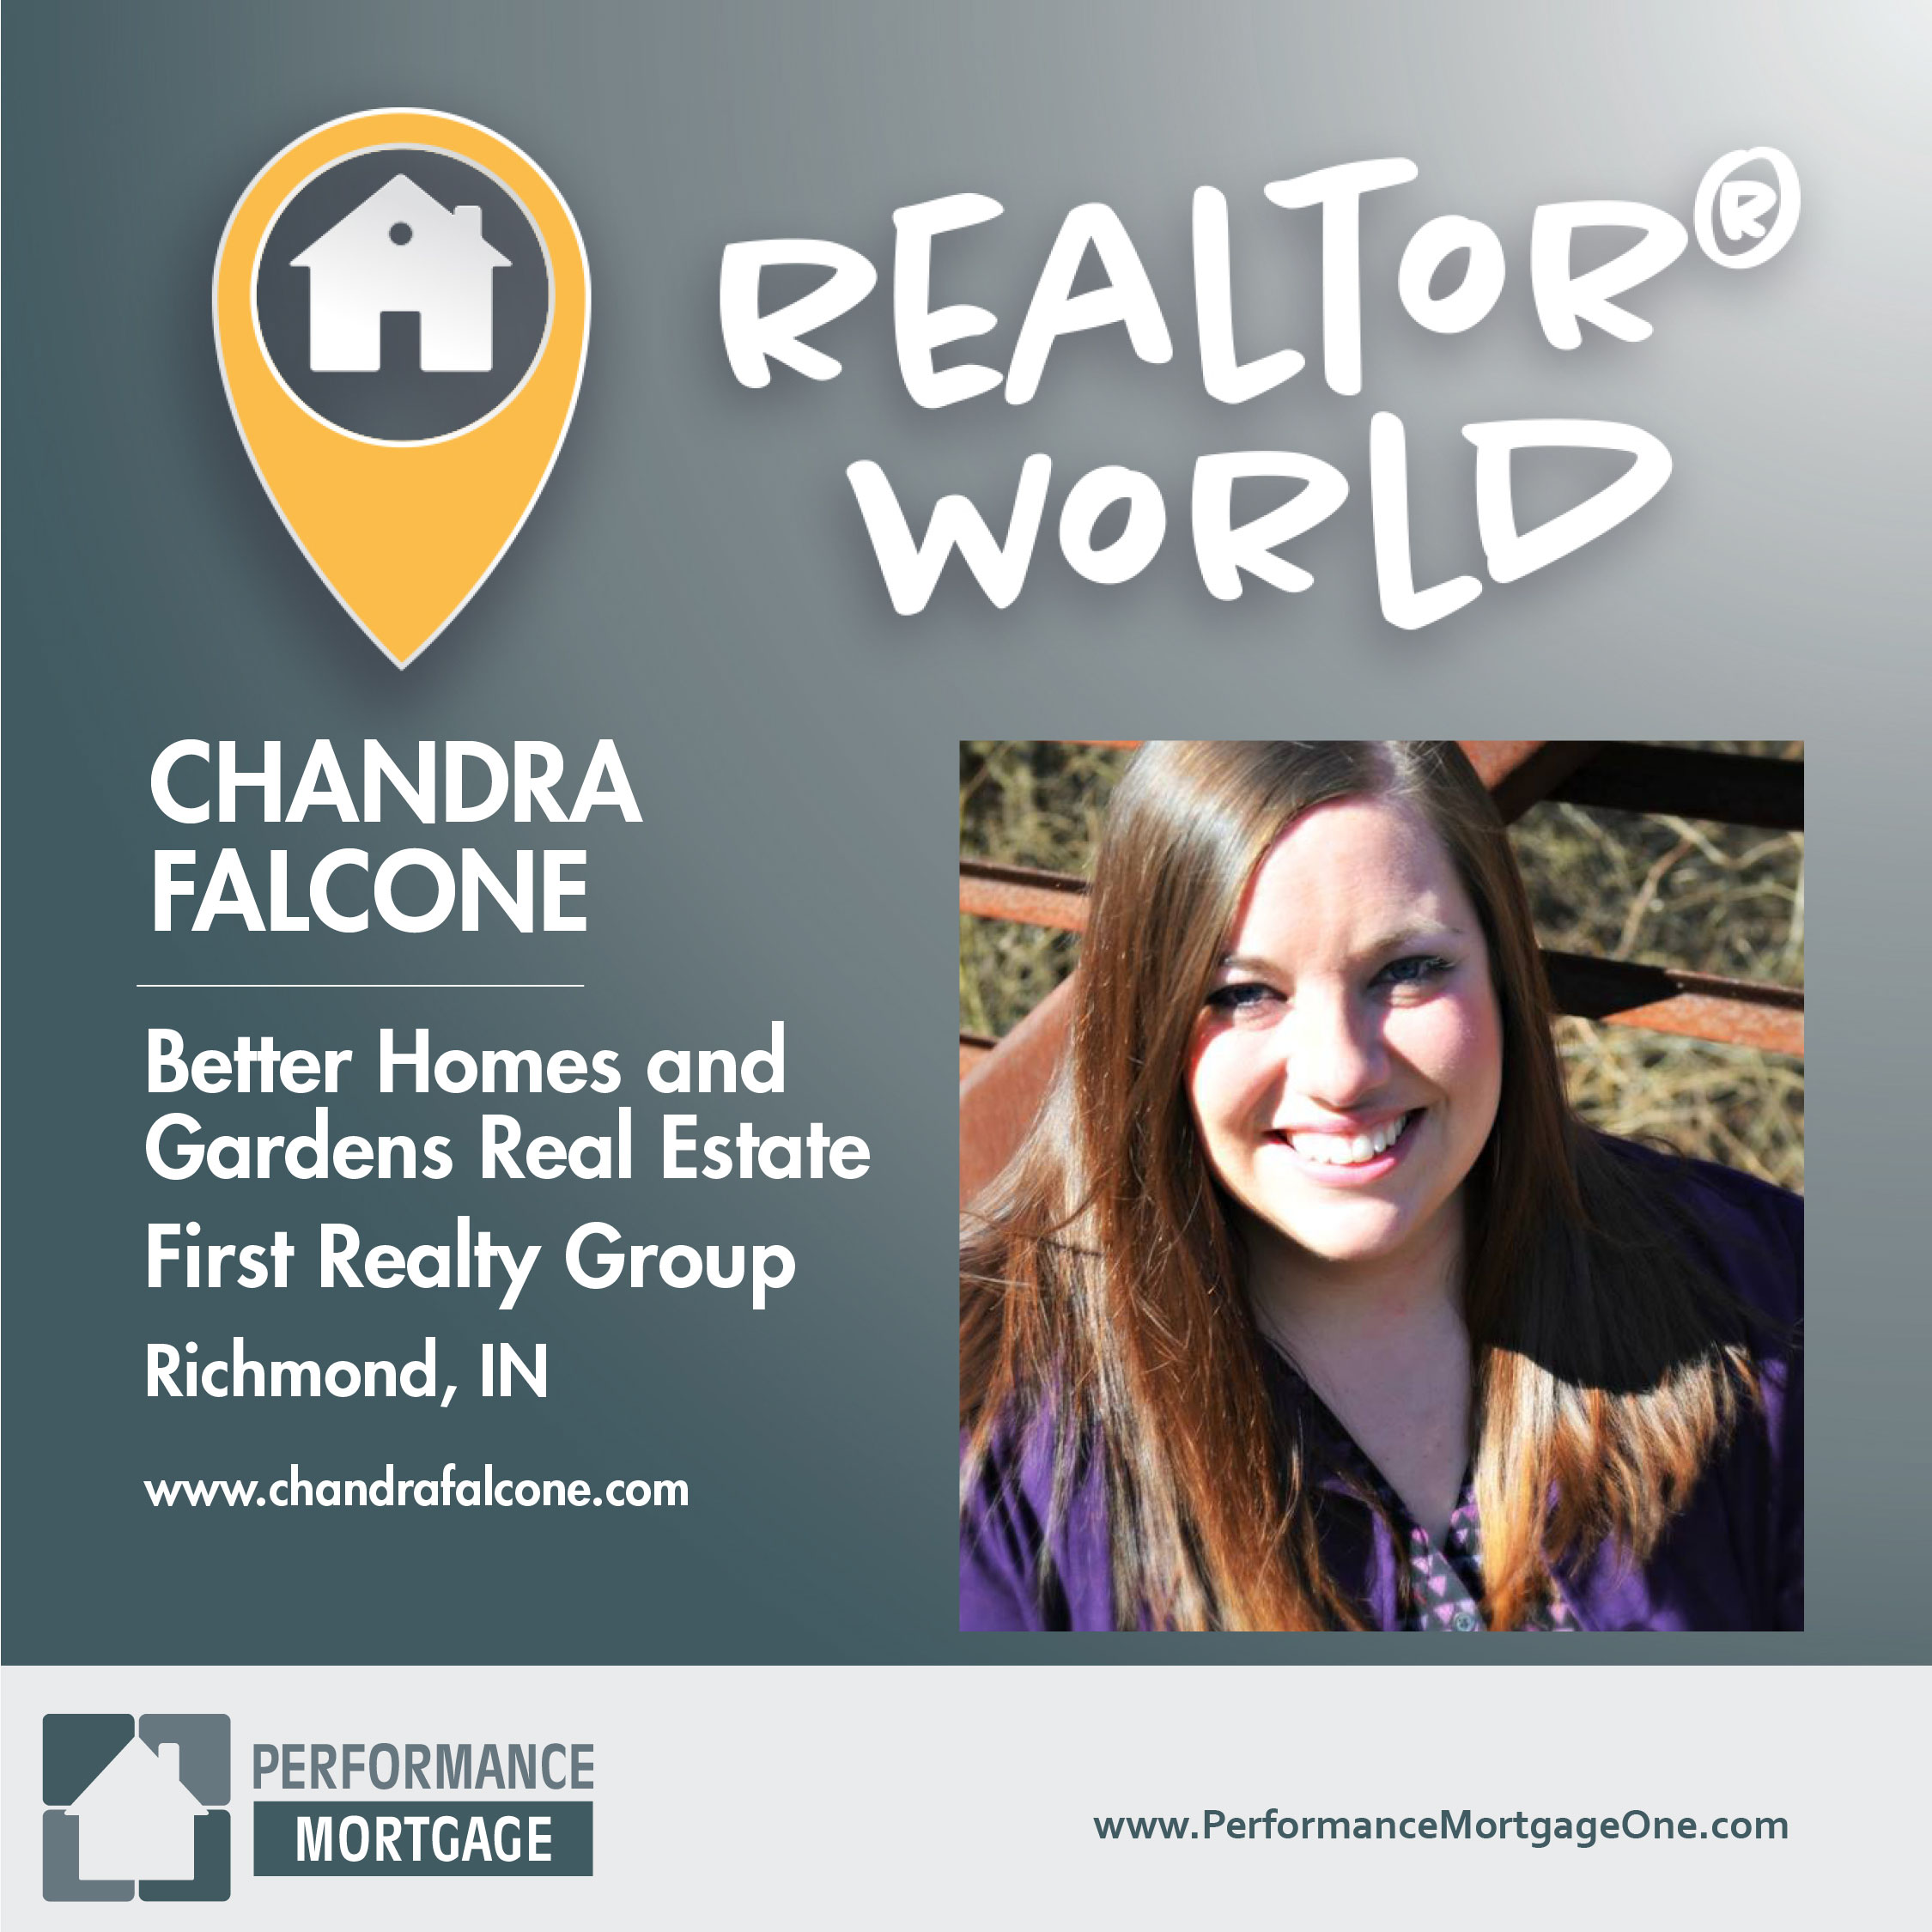 Realtor World Guest Post Chandra Falcone Mason Knows Mortgages Mortgage Solutions In Ohio